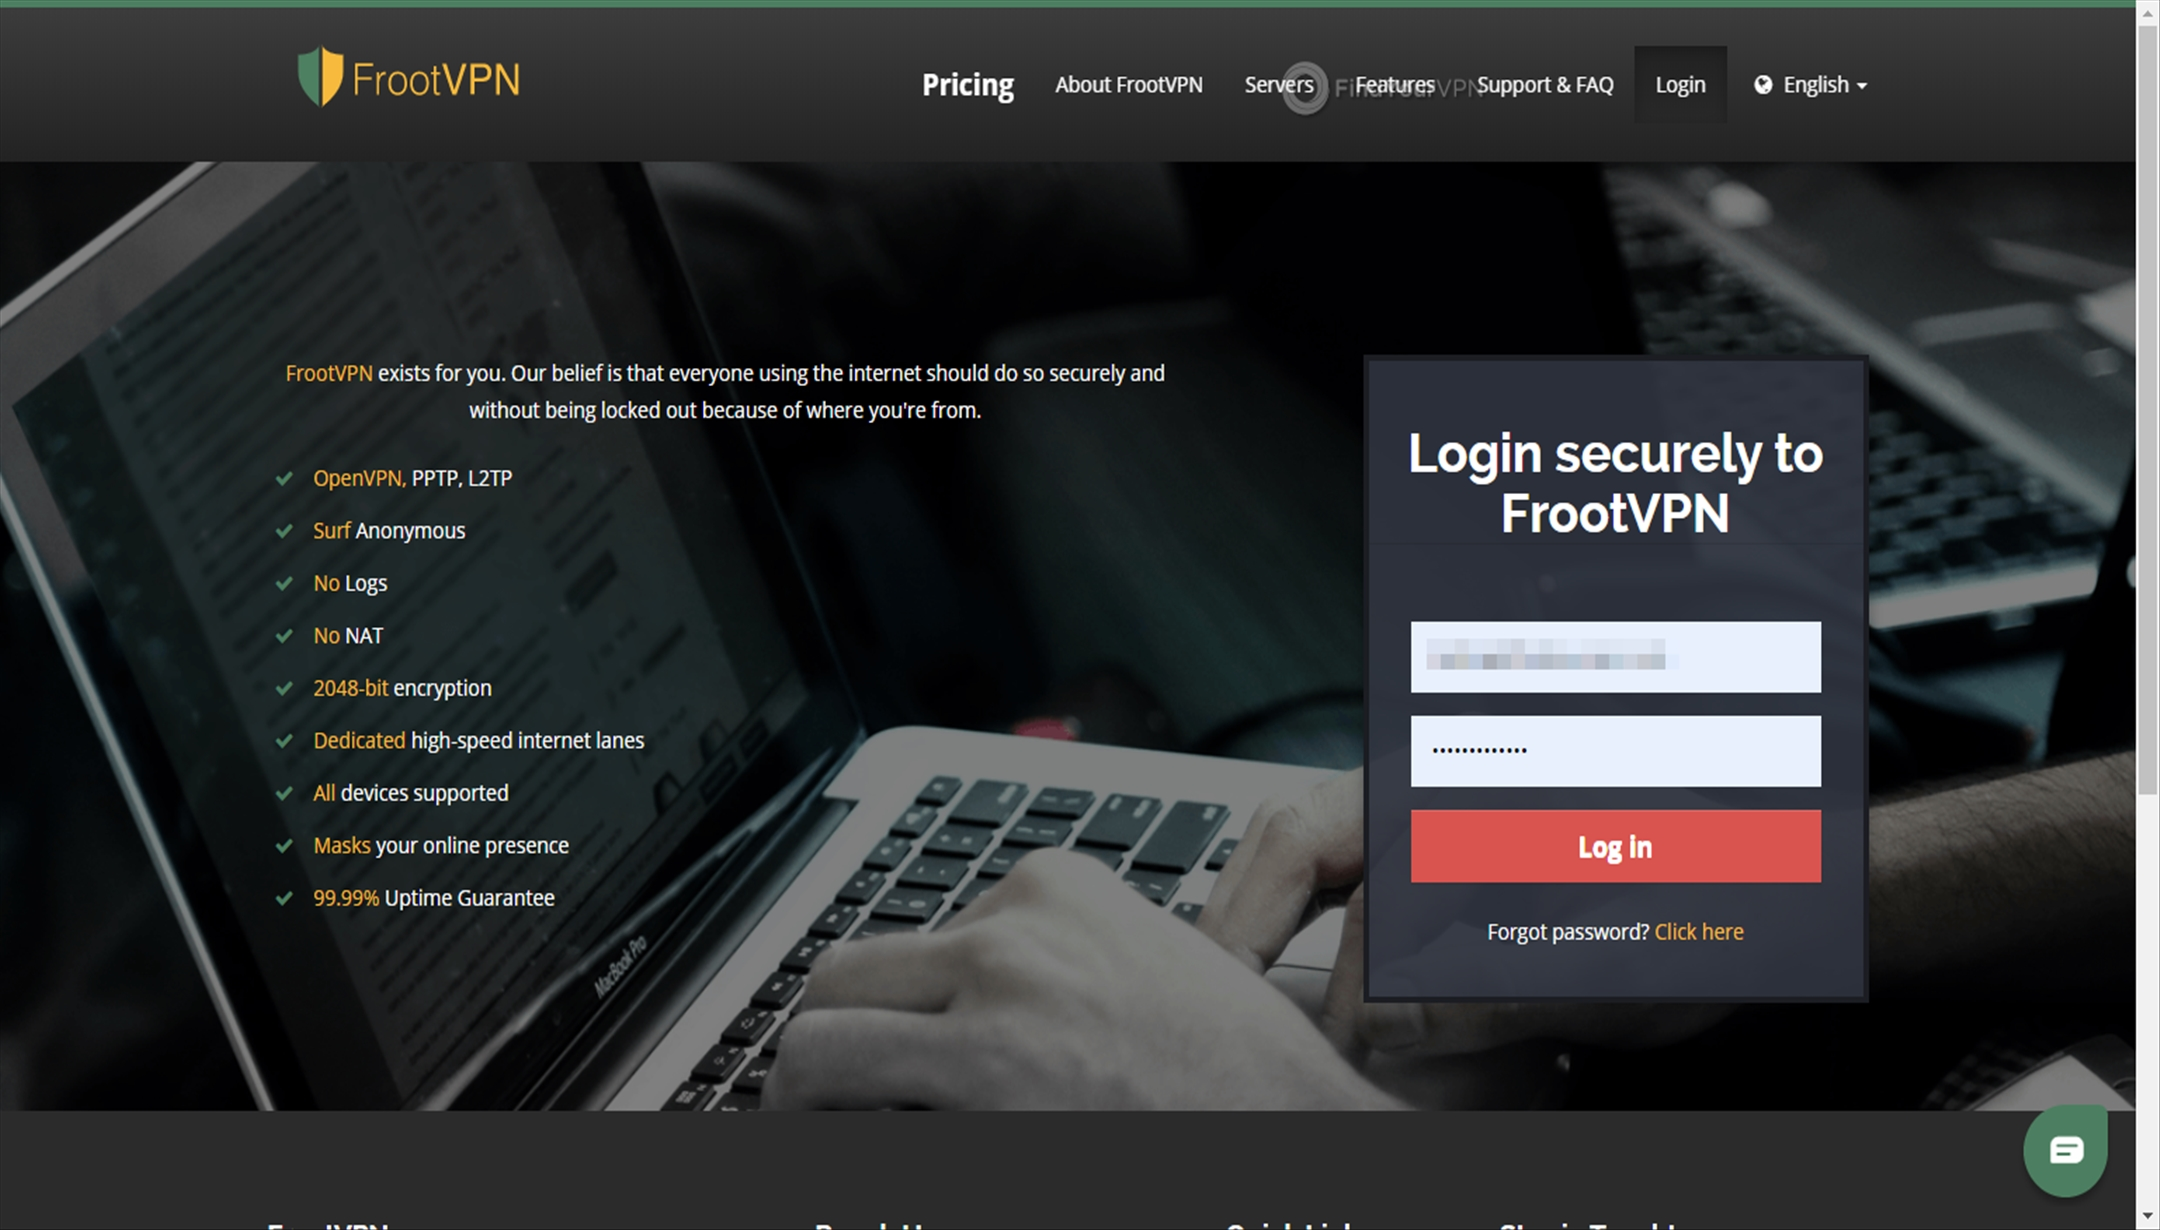 FrootVPN Download App Login Credentials